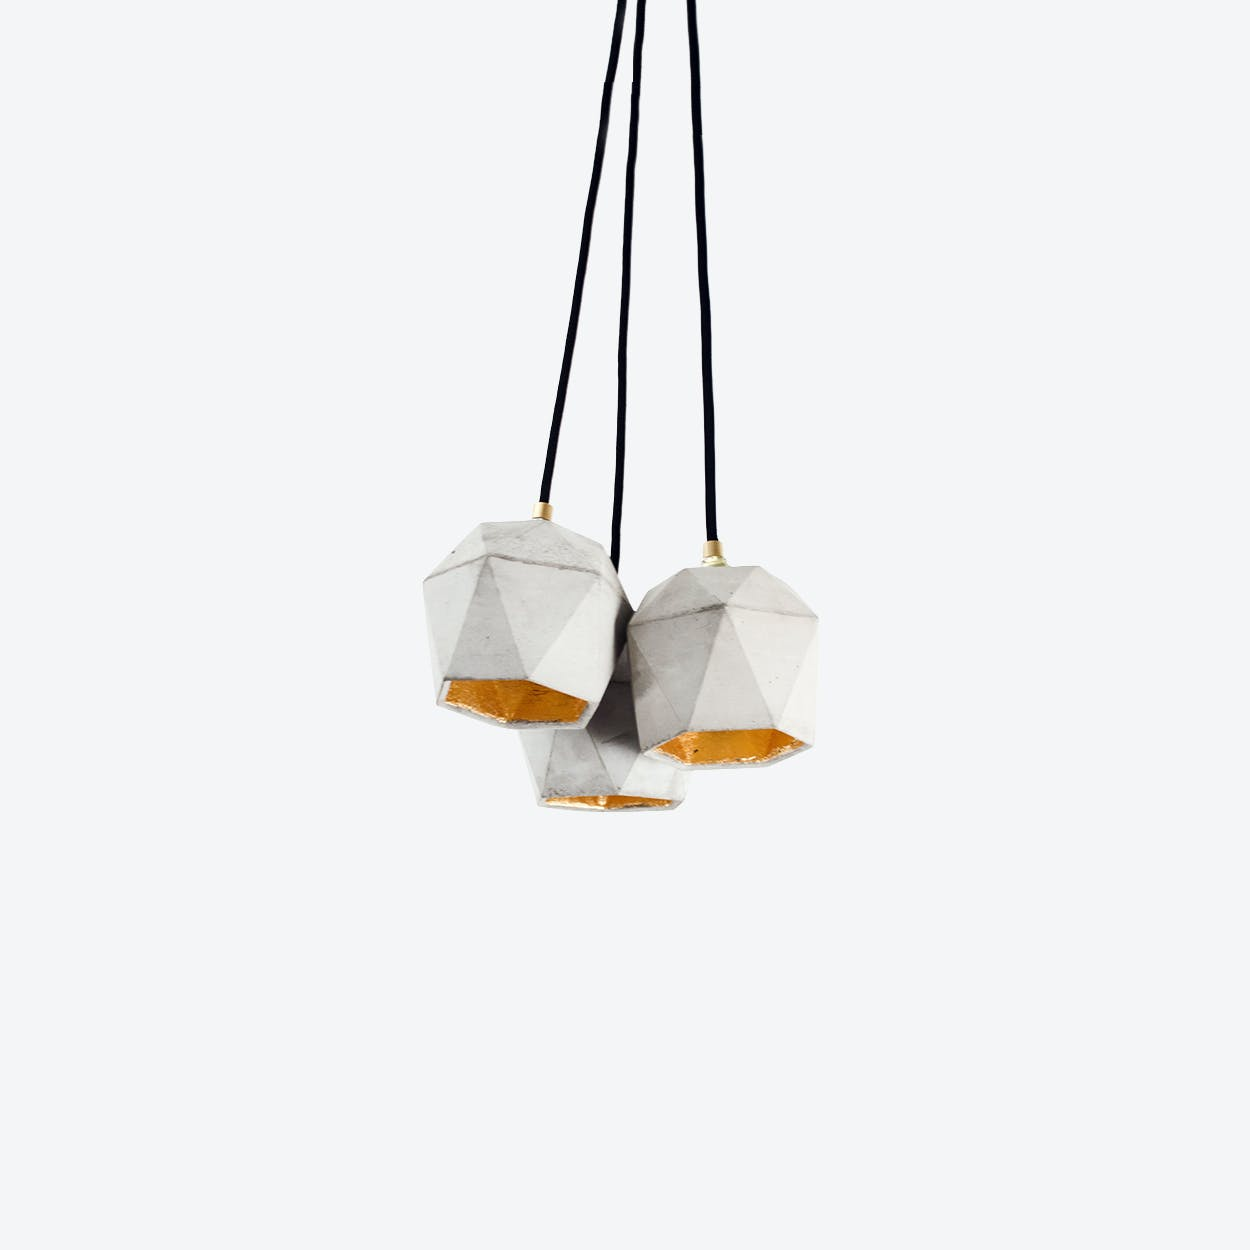 Concrete Bundle Pendant Light Triangle T2 in Light Grey and Gold